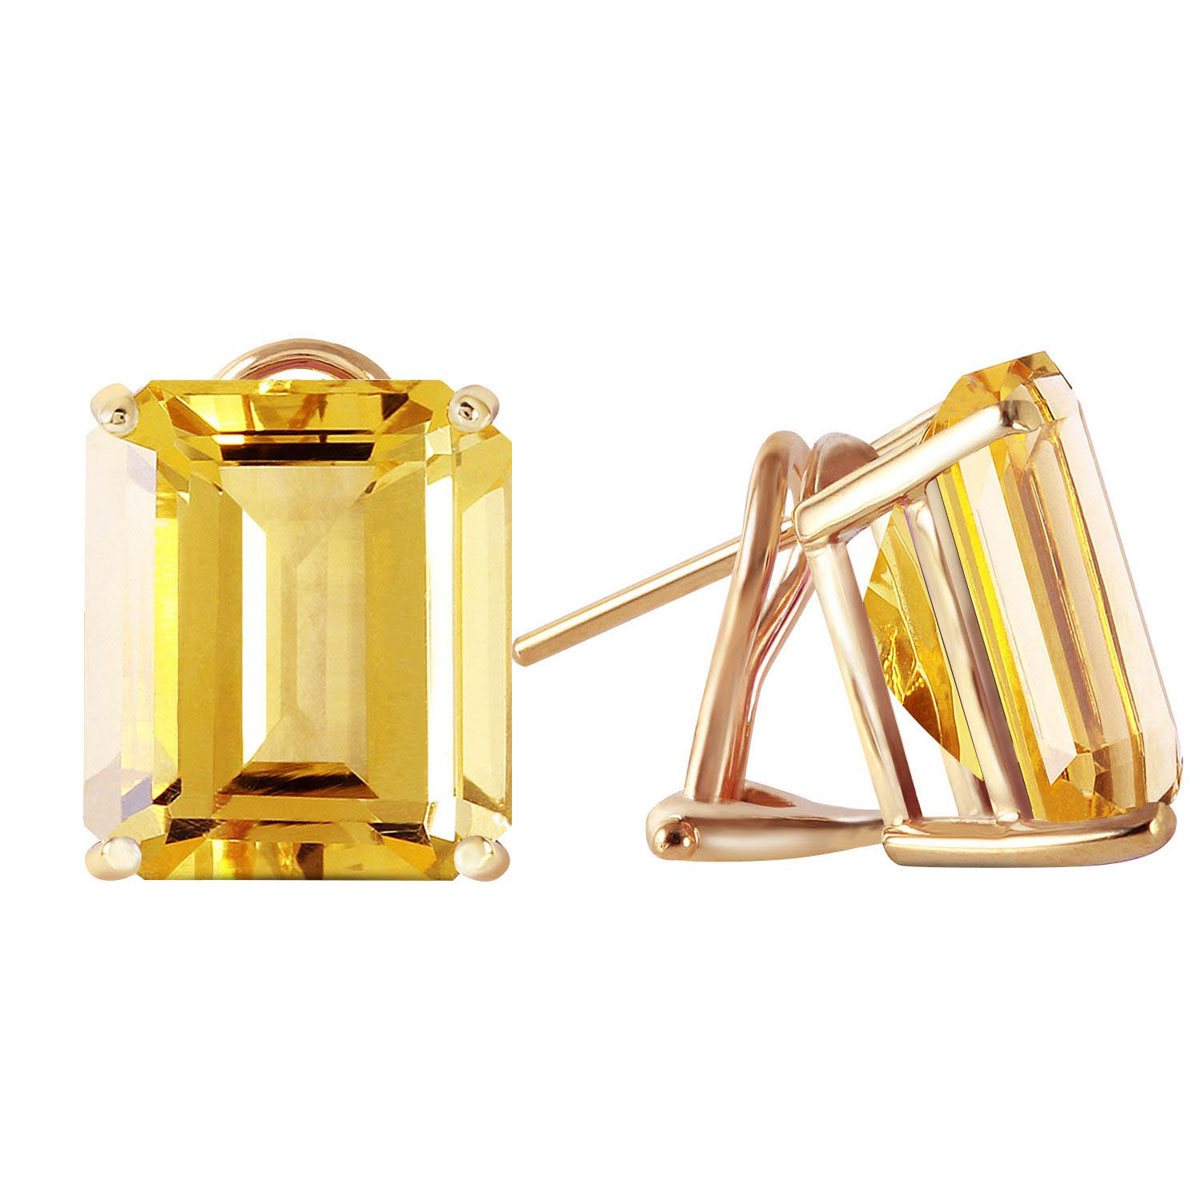 Citrine Stud Earrings 13 ctw in 9ct Gold